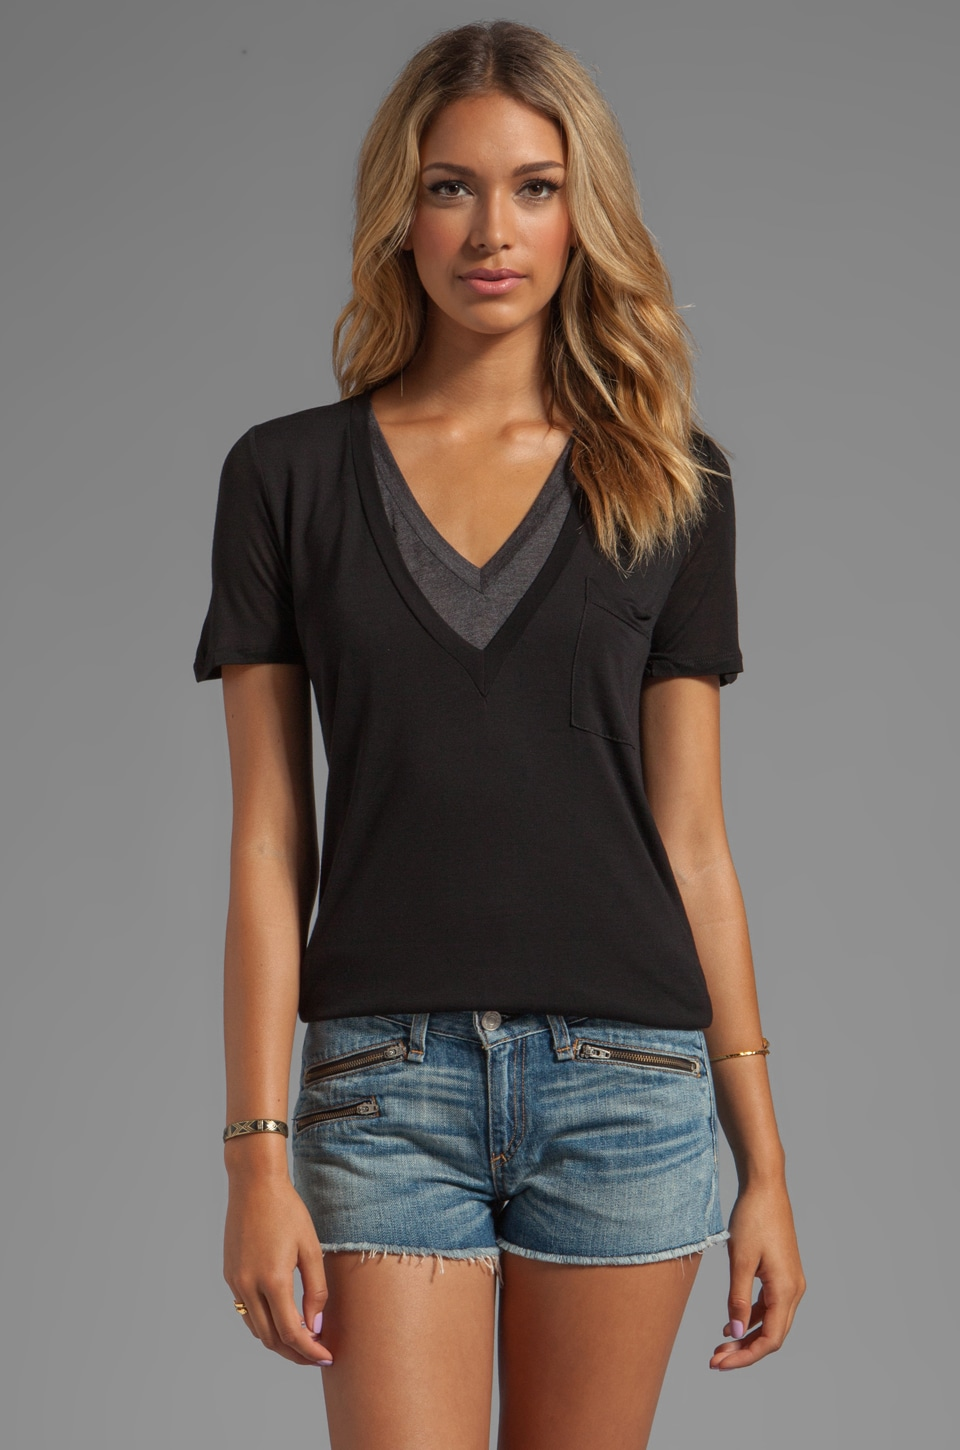 Heather Double V Colorblock Tee in Black/Heather Black